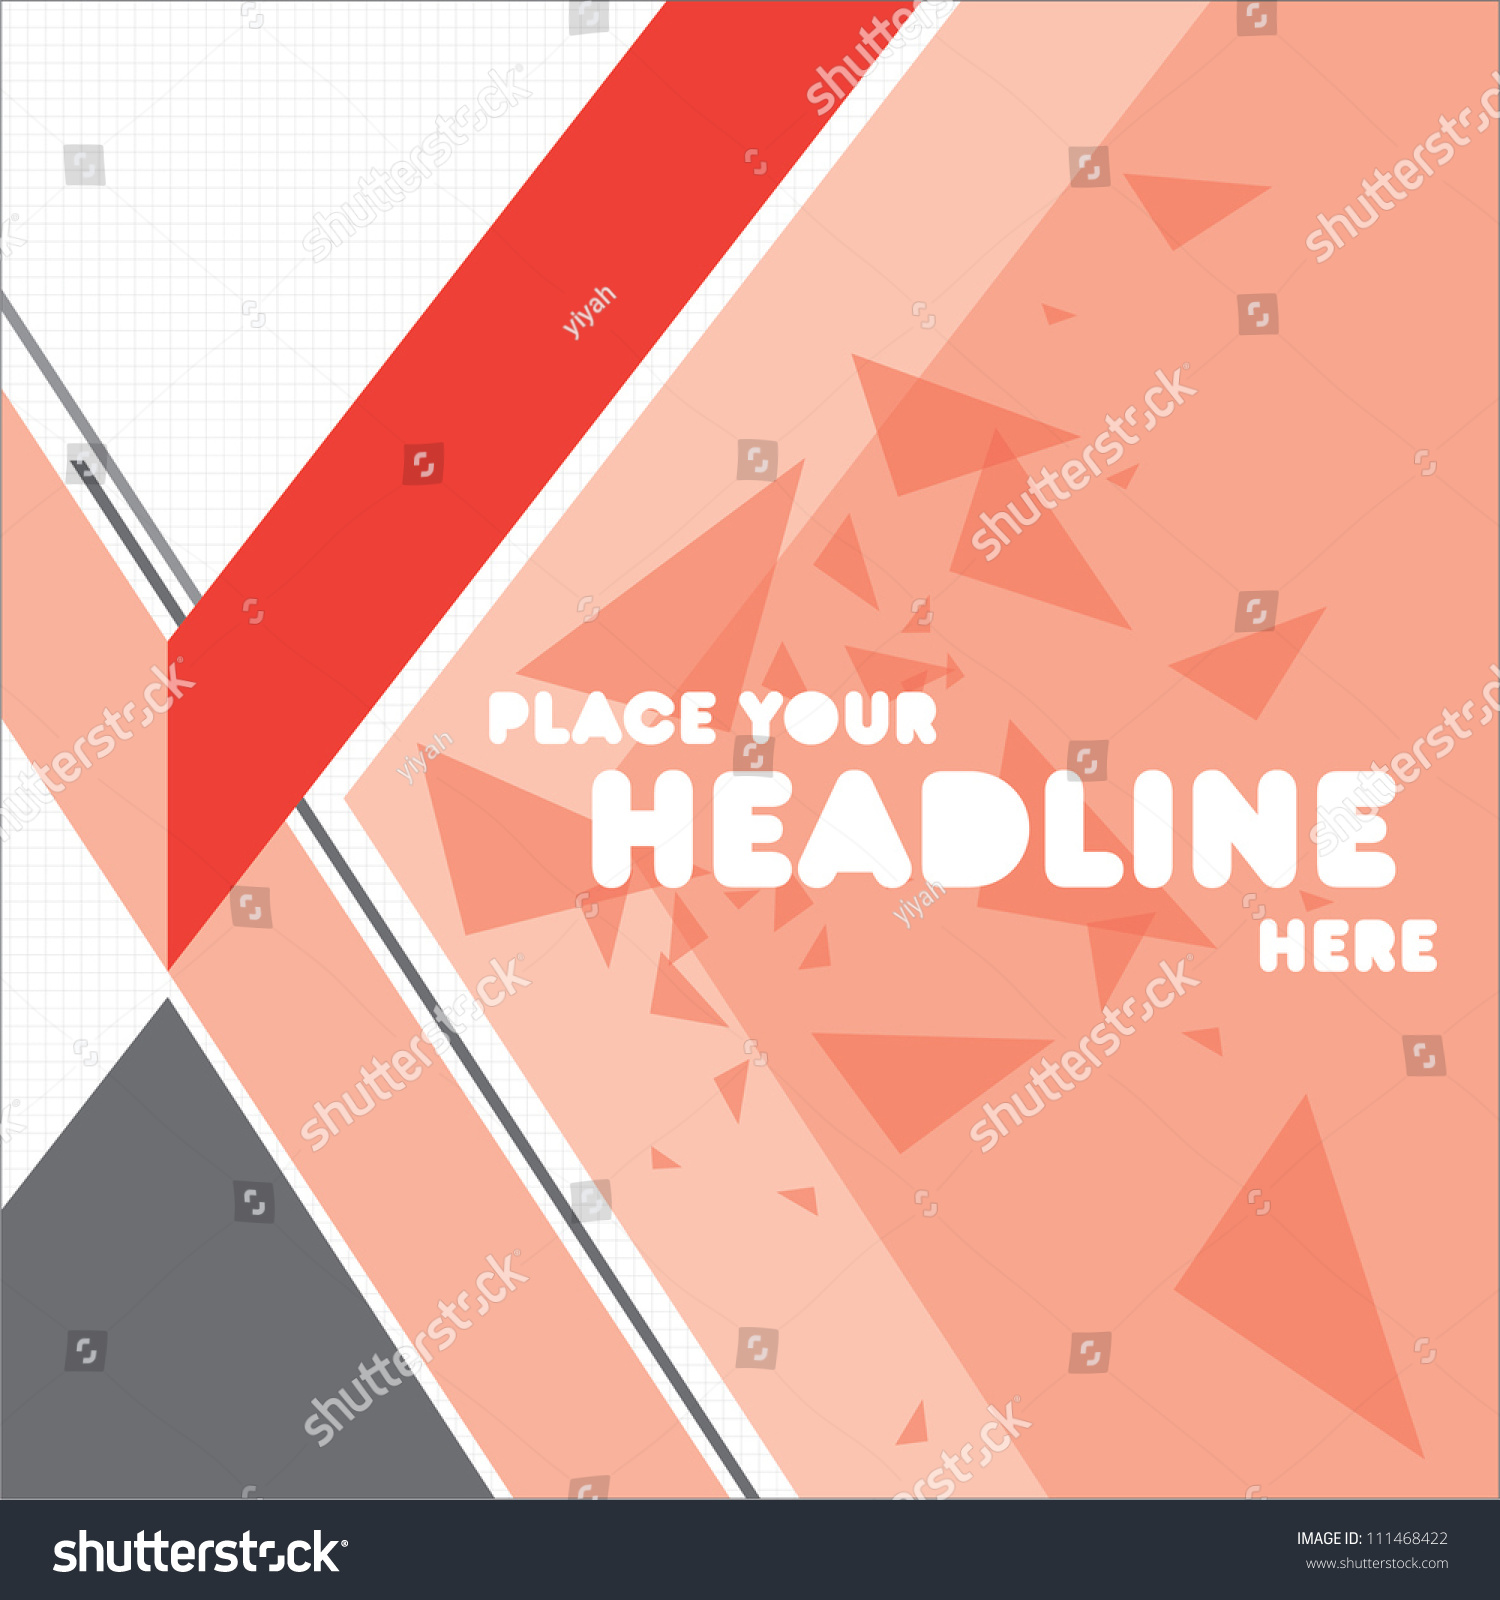 Print/Cover Design Template/Layout Design/Background